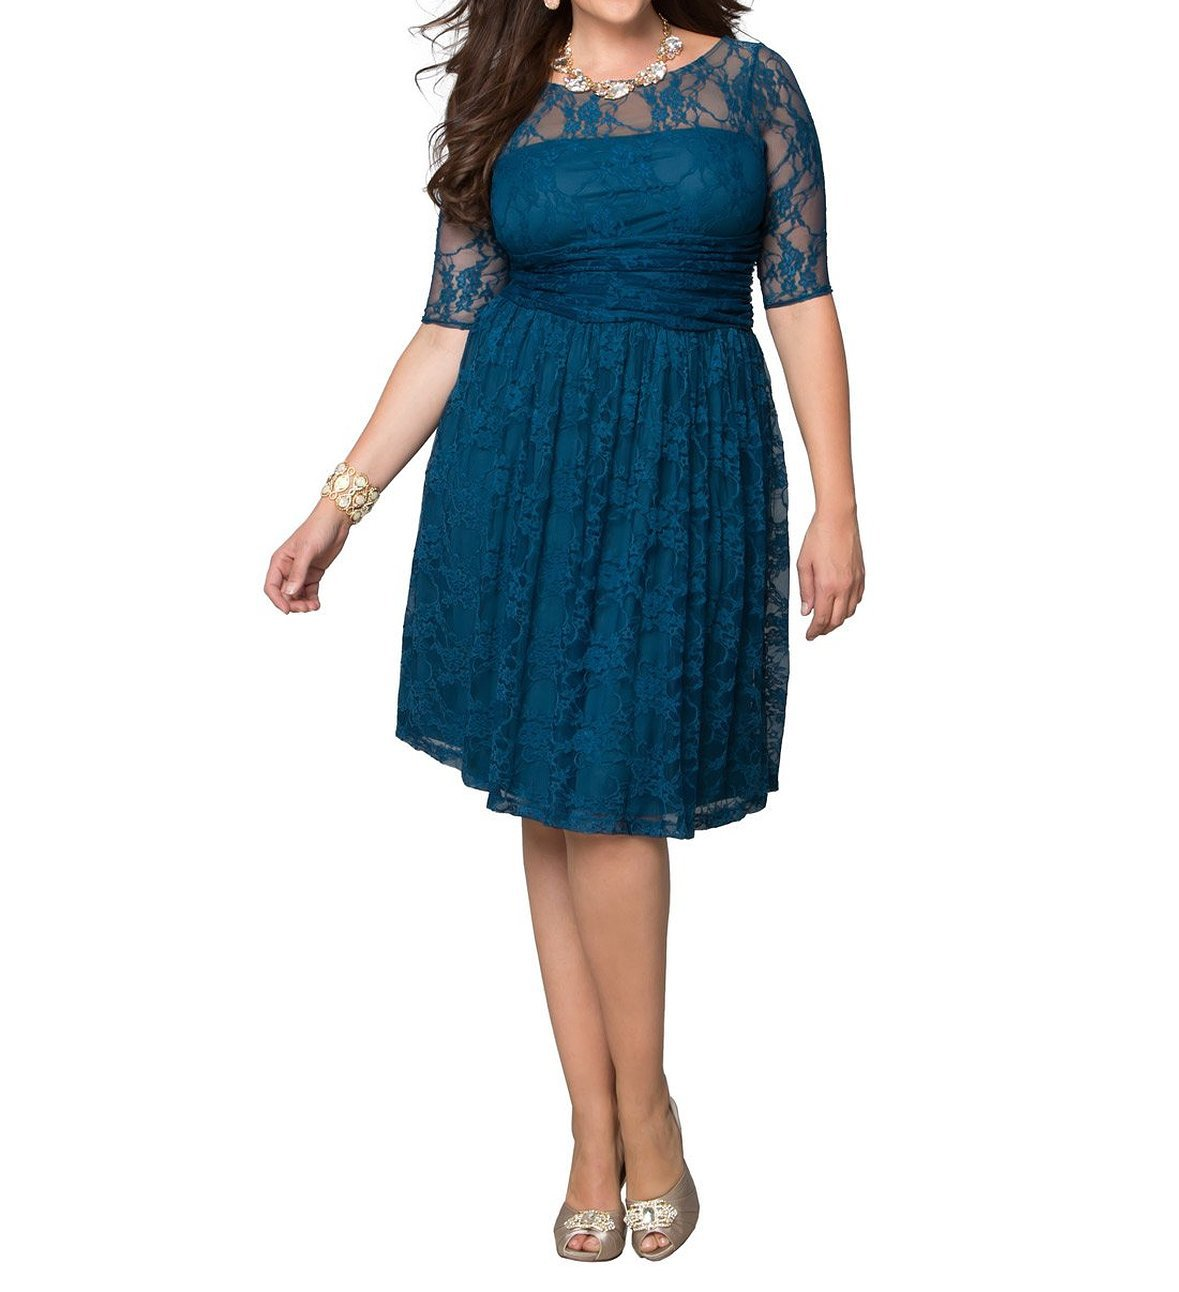 Dilanni Women's Casual Half Sleeves Lace Dress Plus Size (0X-5X) NURPZ002